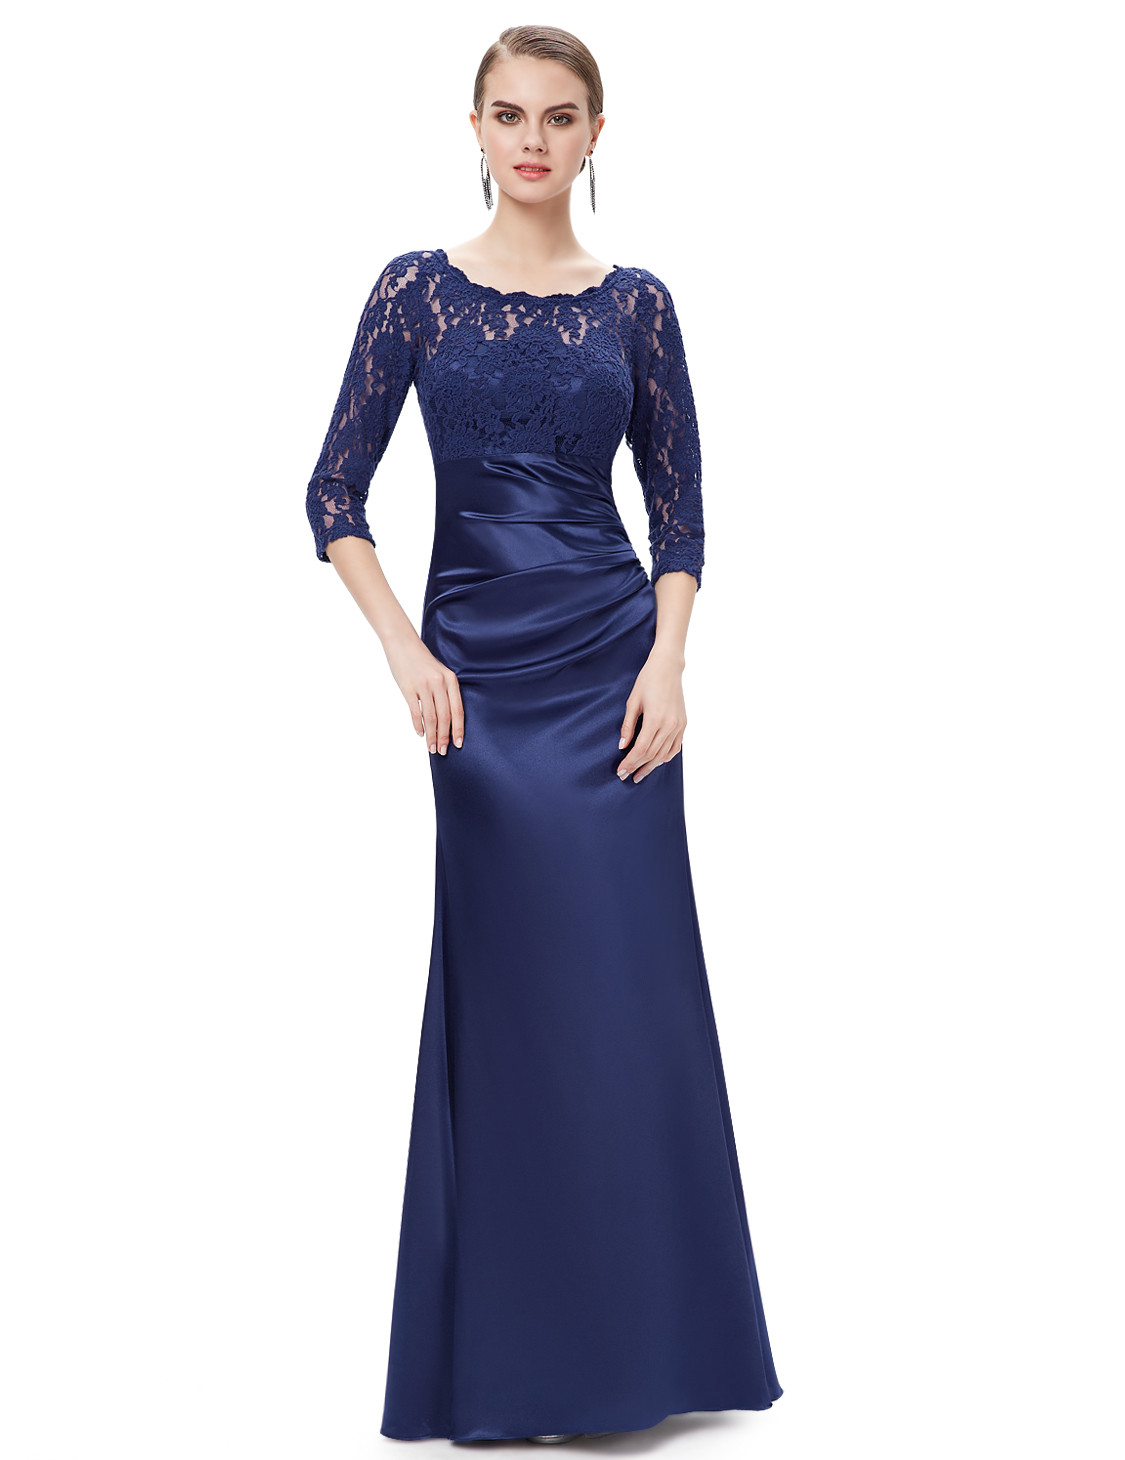 Navy long blue bridesmaid dresses with sleeves forecasting dress for winter in 2019